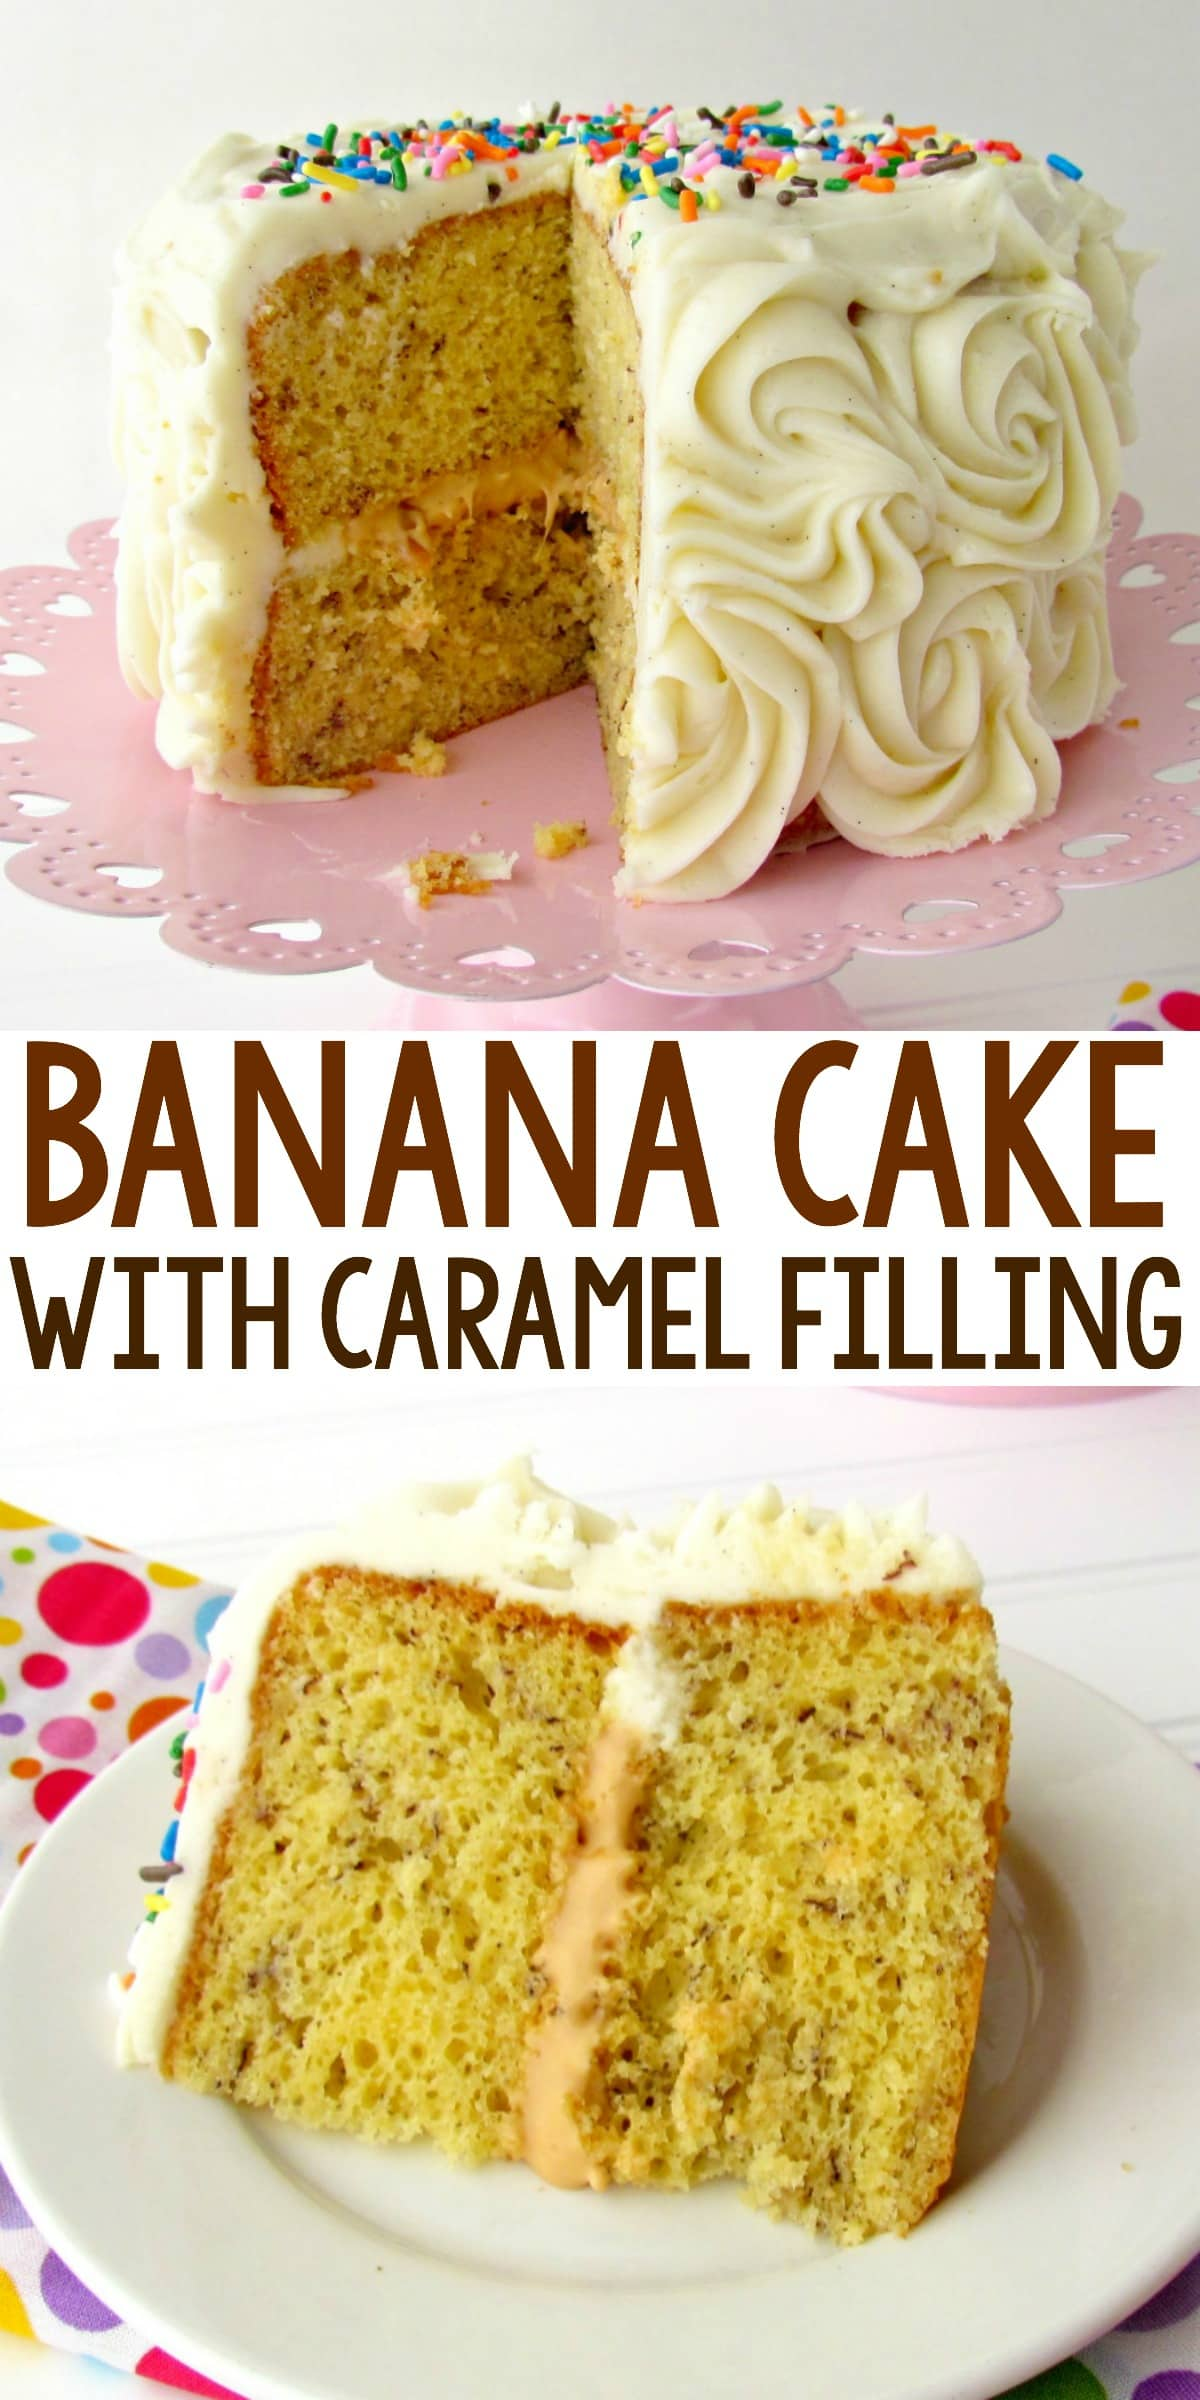 The BEST Banana Cake with Caramel Filling - the filling is caramel ganache! Use simple caramels and heavy cream to make a great filling for any cake or cupcake!